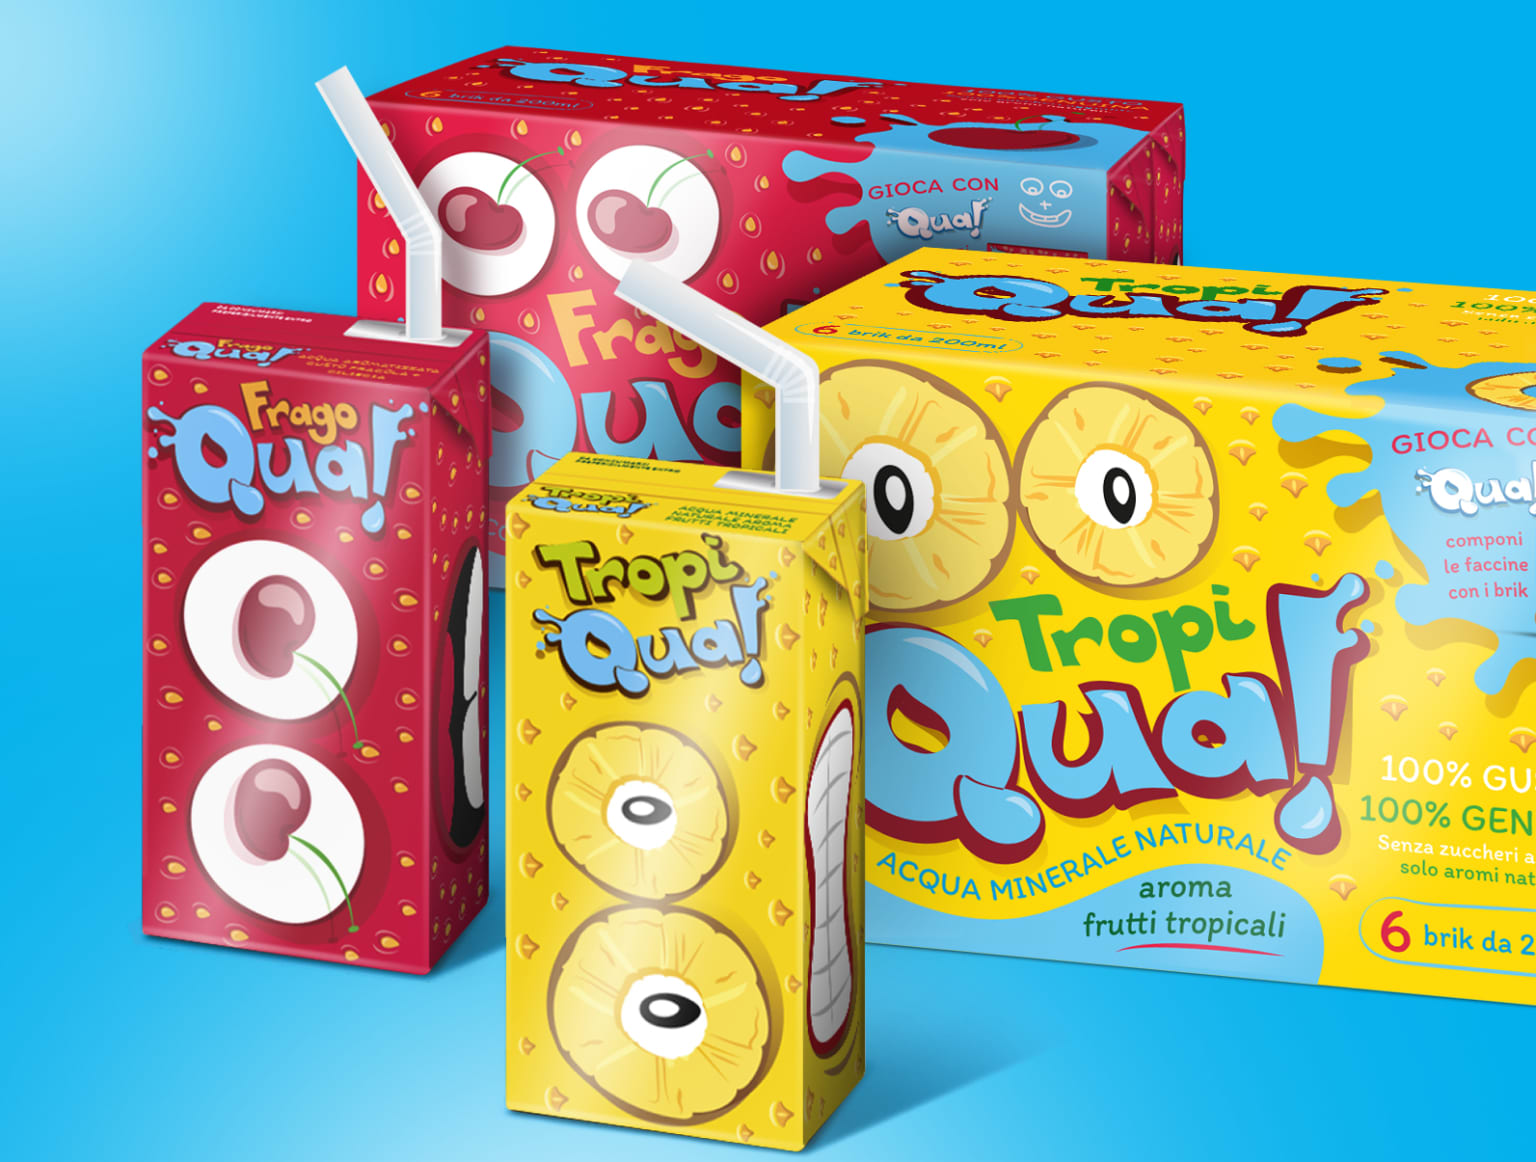 A-QUA Flavored Water Brand & Packaging